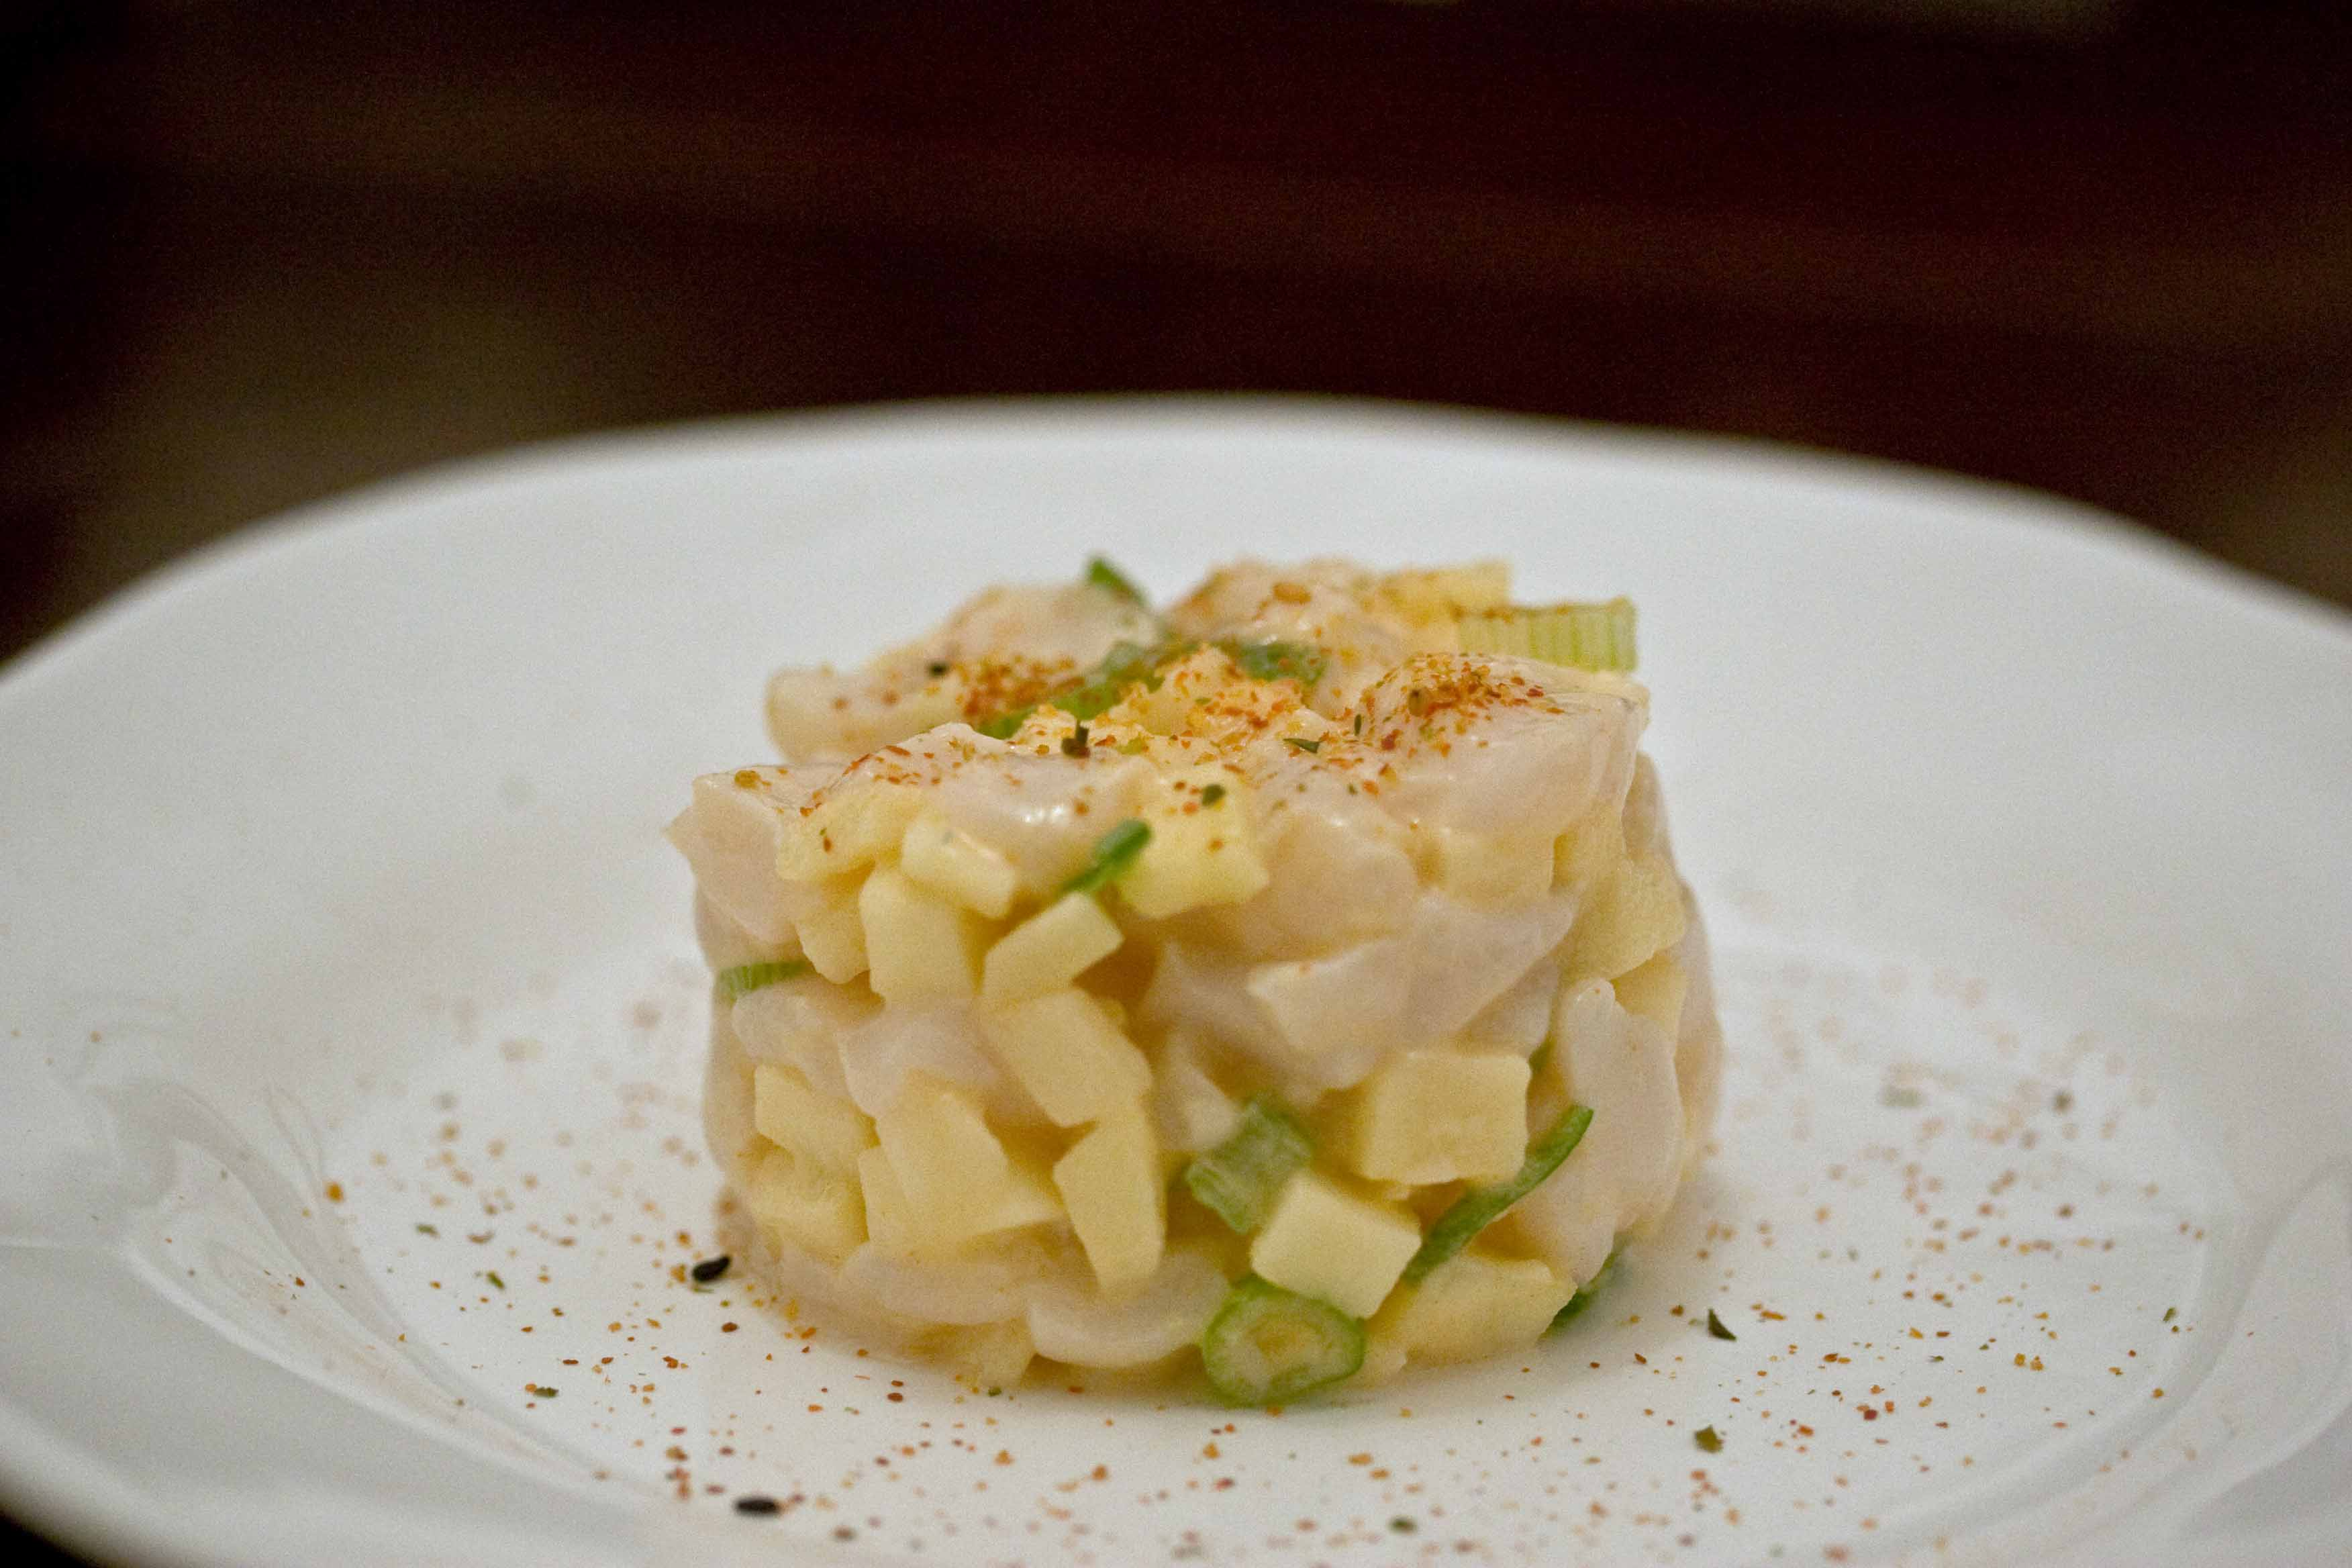 Scallop and Apple Tartare